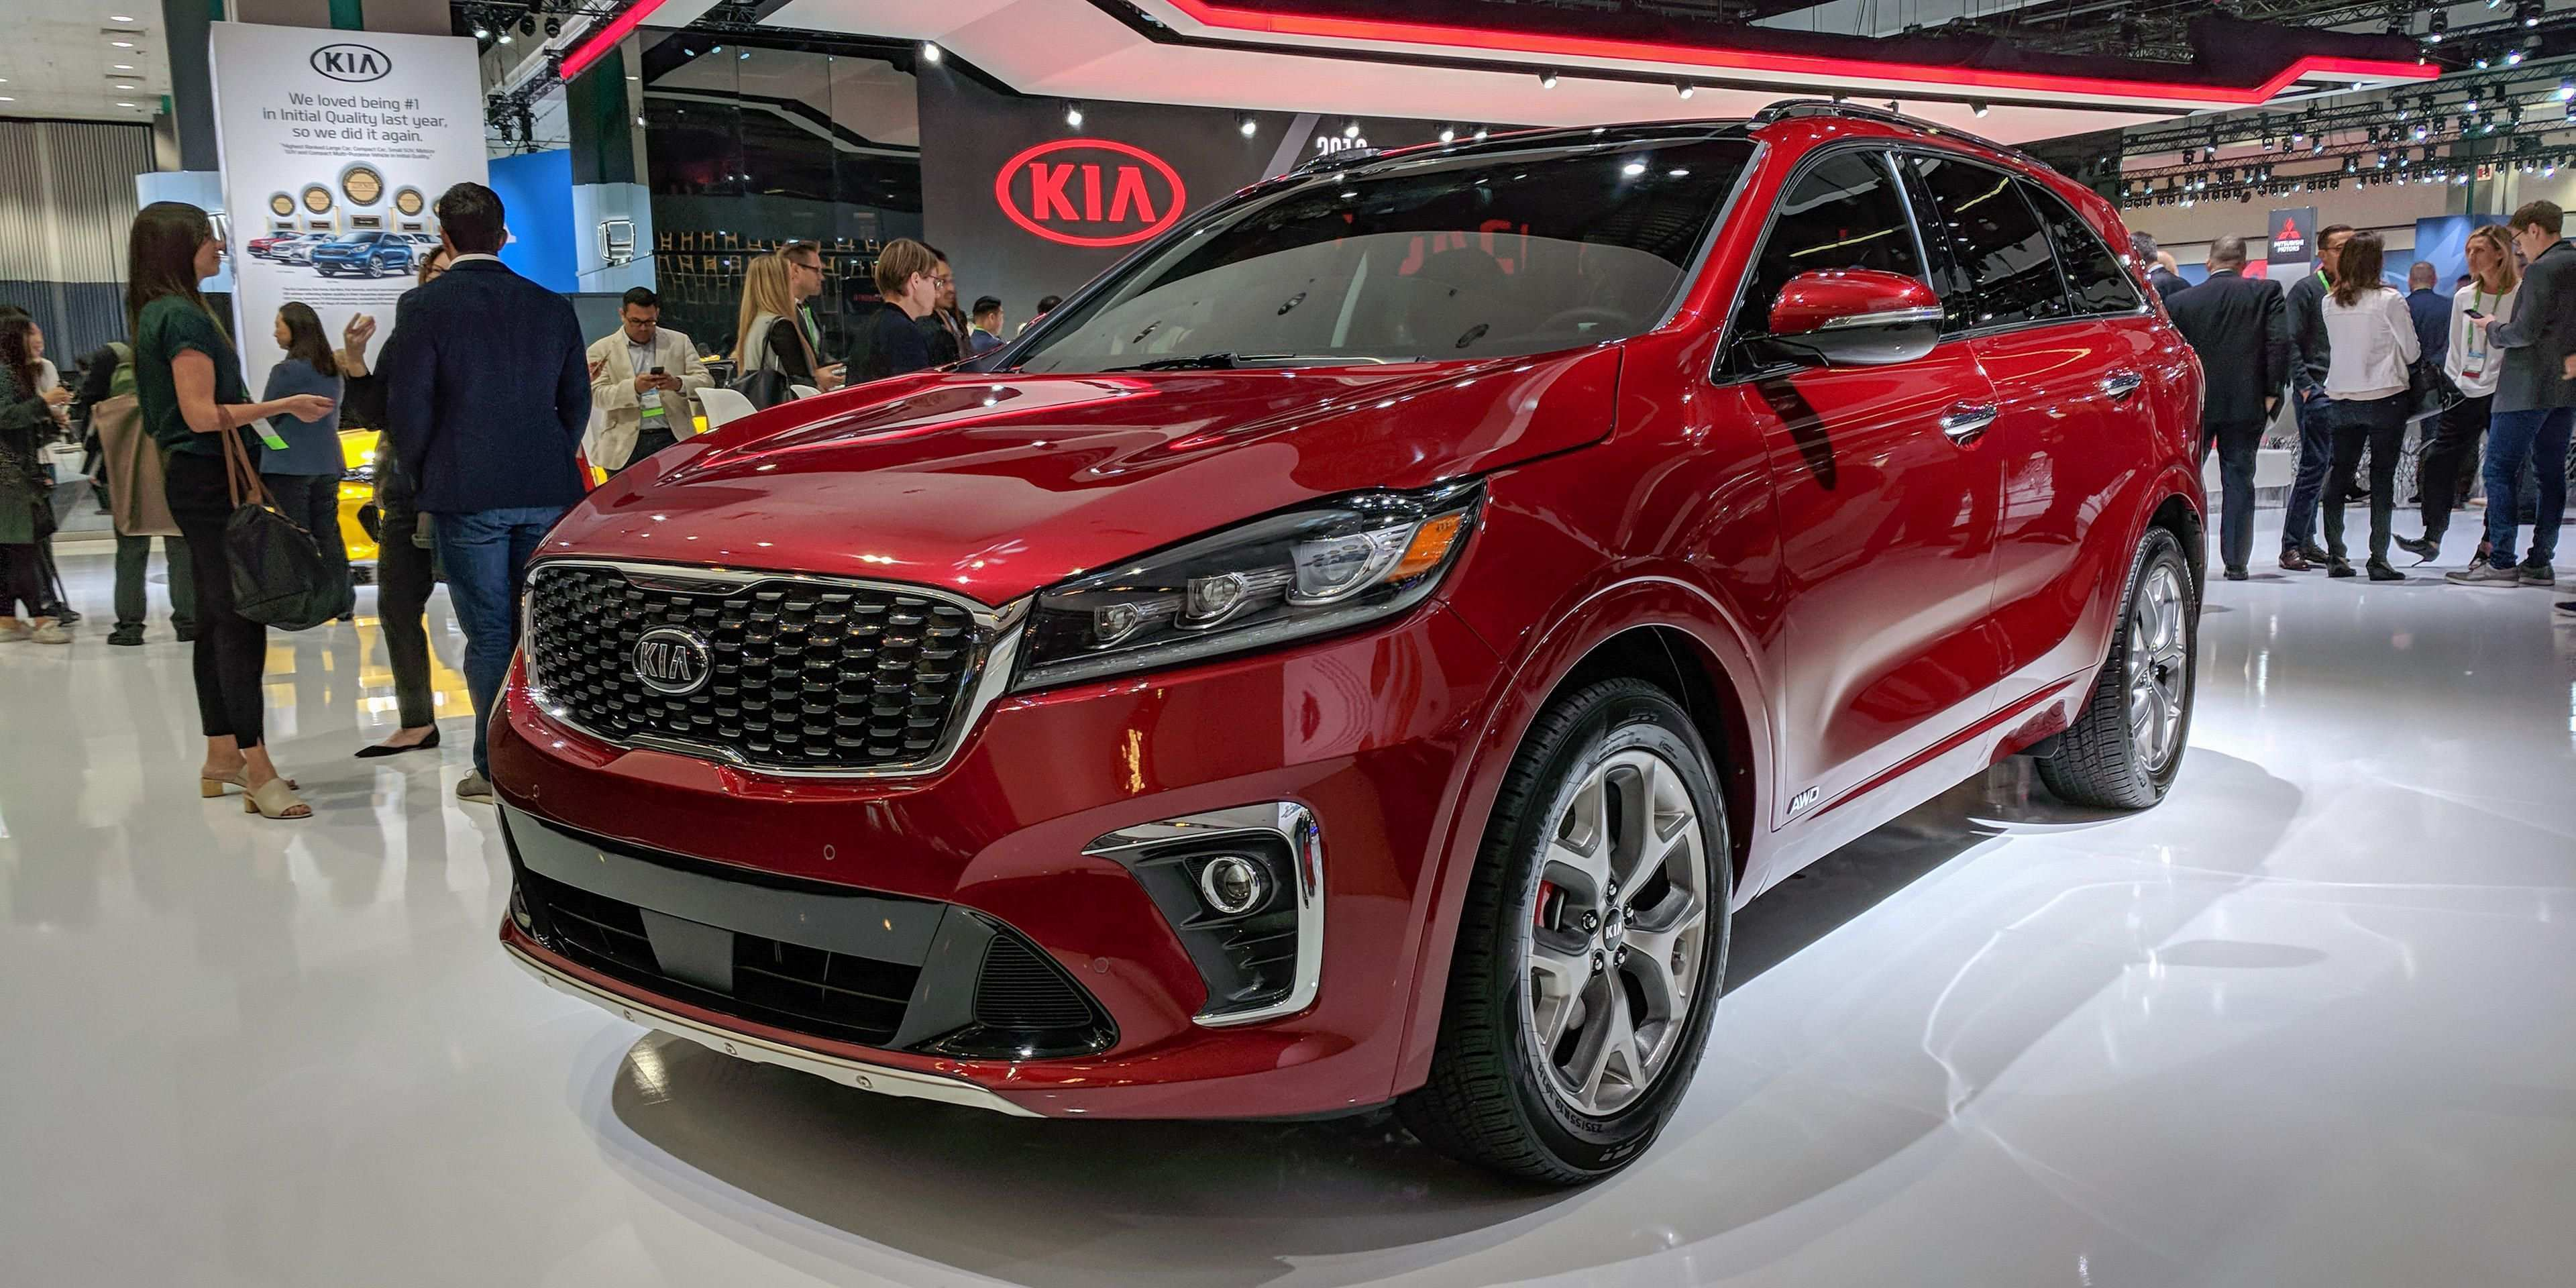 58 Gallery of 2019 Kia Sorento Release Date Specs and Review by 2019 Kia Sorento Release Date